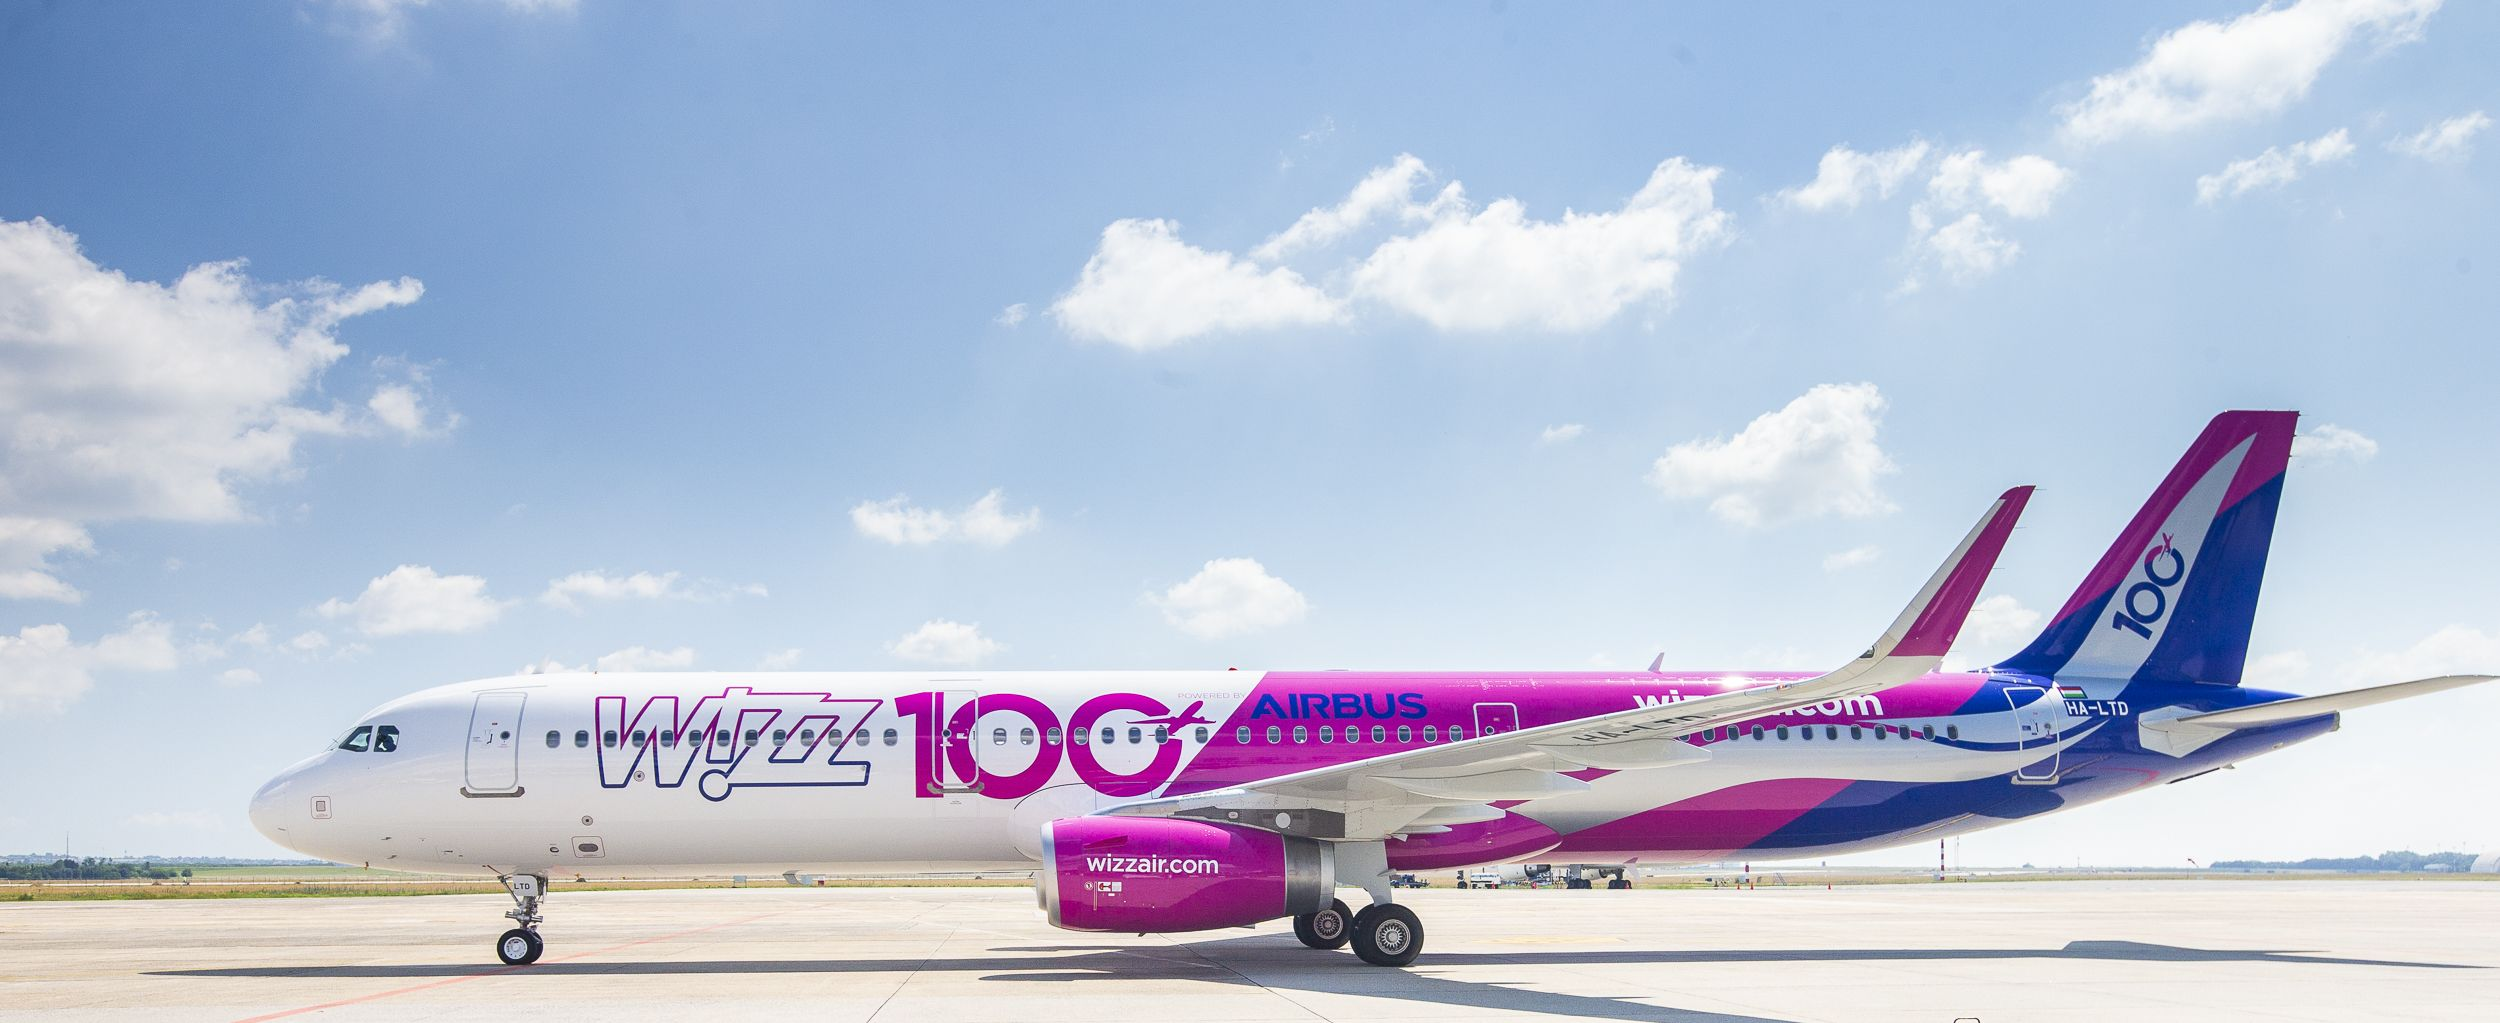 Wizz Air Takes Delivery Of Its 100th A320 Family Aircraft Commercial Aircraft Airbus